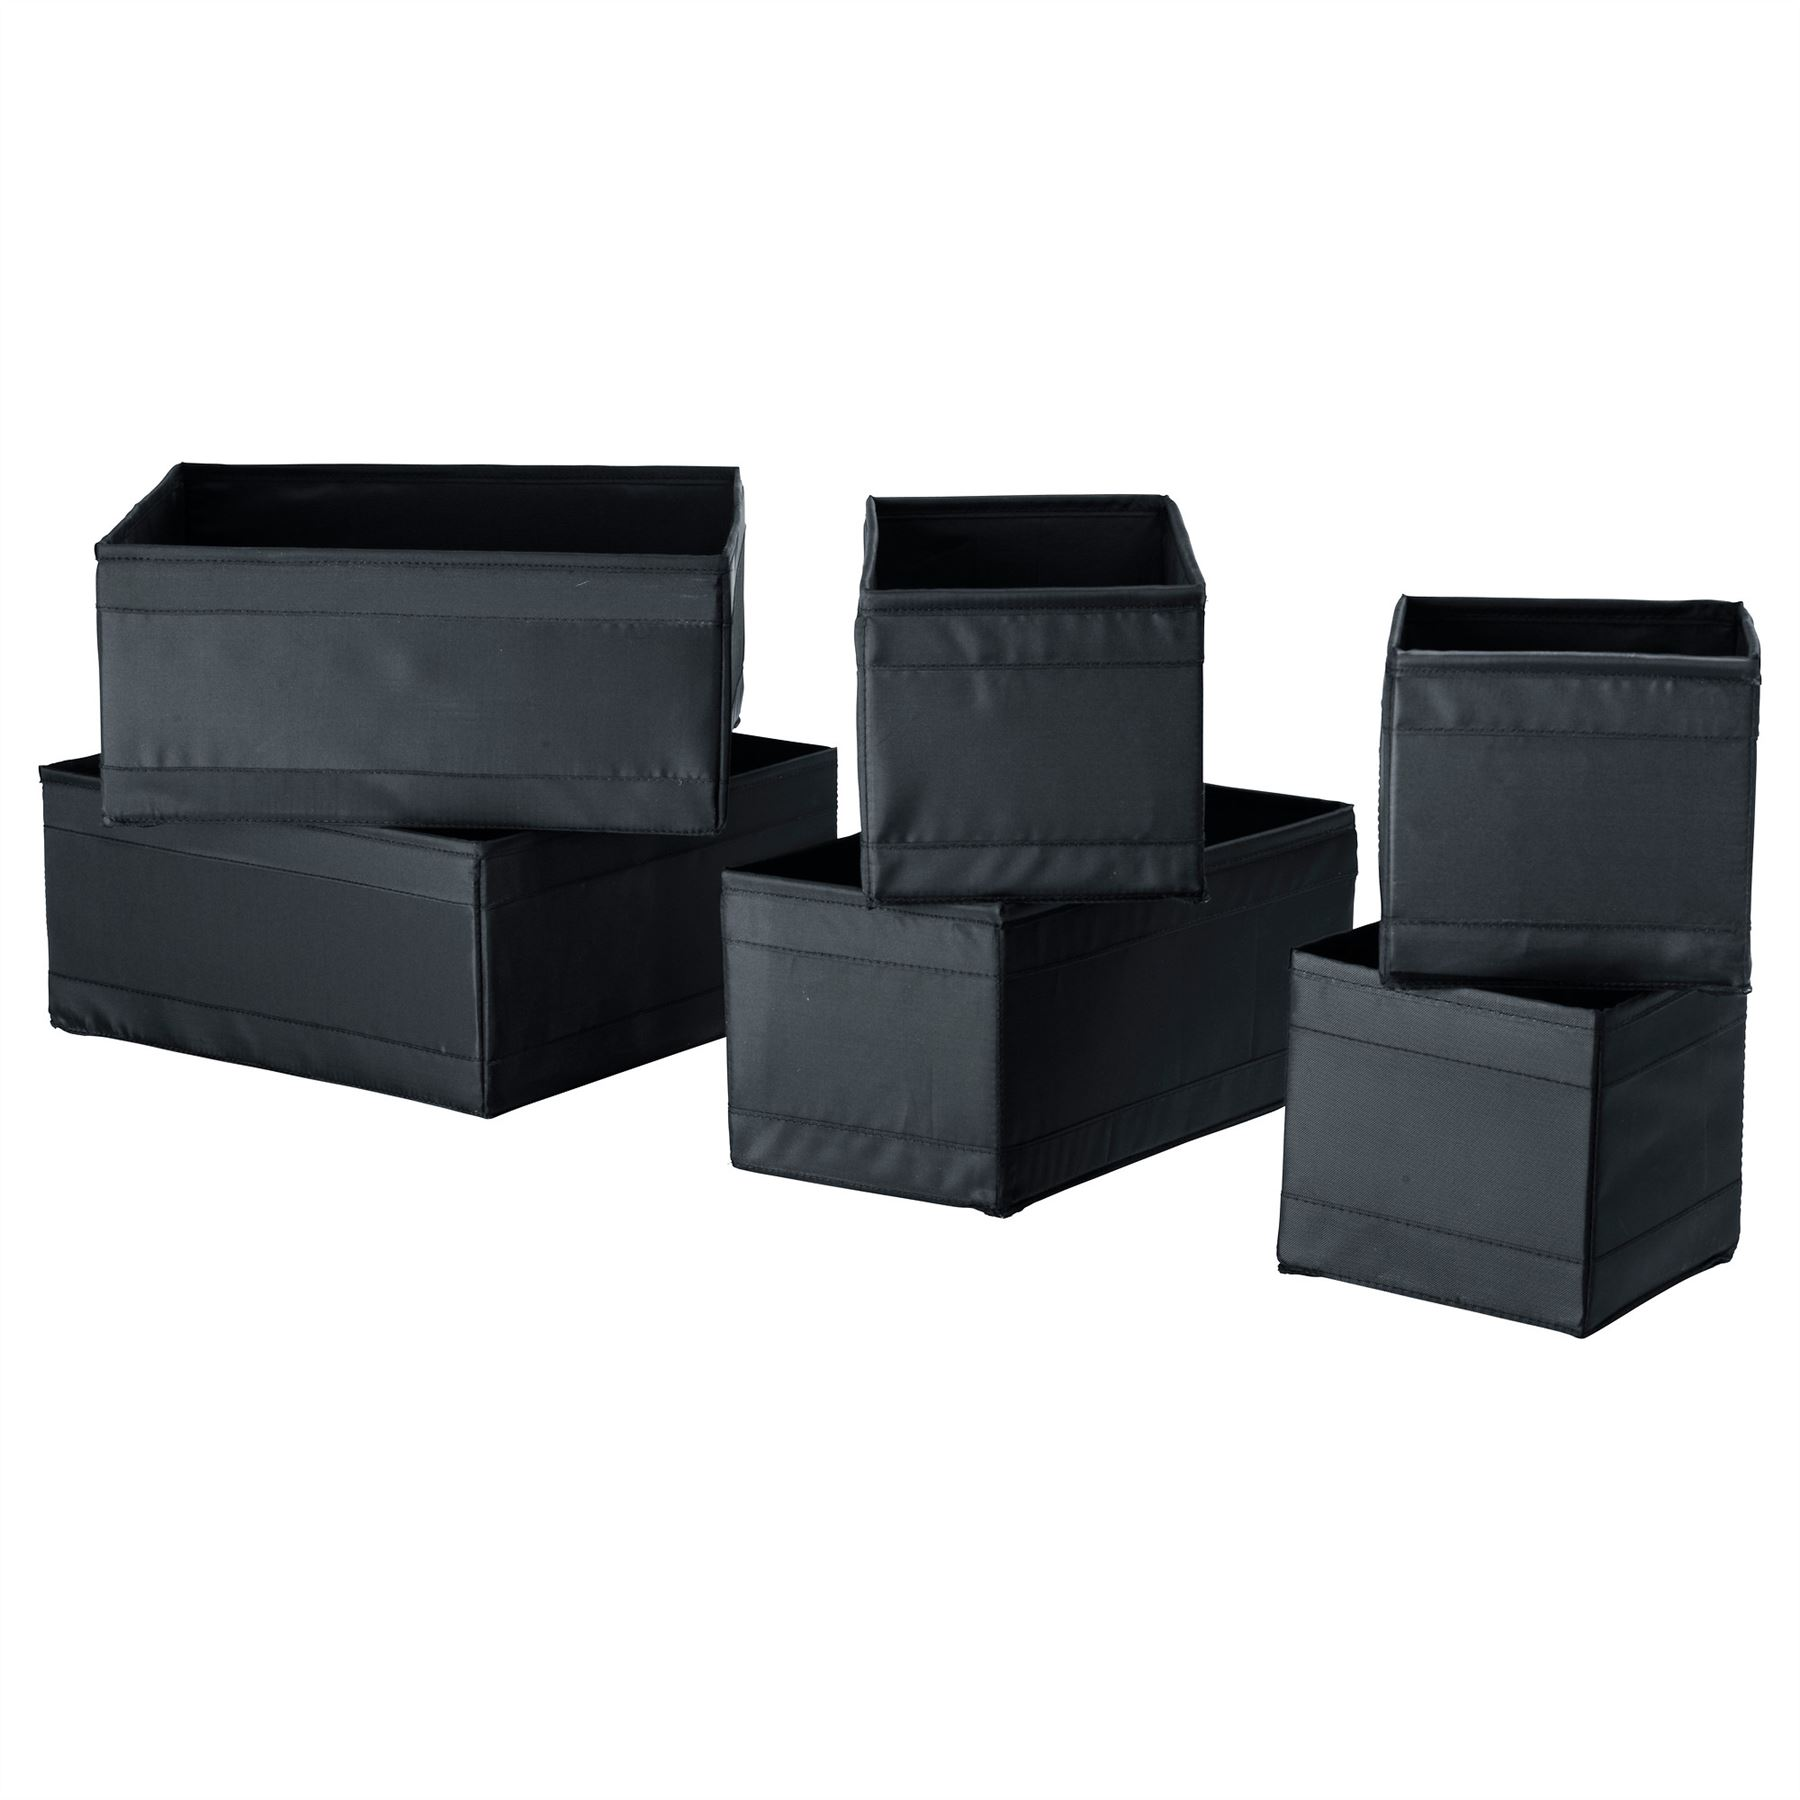 ikea skubb set of 6 storage box organizer wardrobe drawer divider ebay. Black Bedroom Furniture Sets. Home Design Ideas